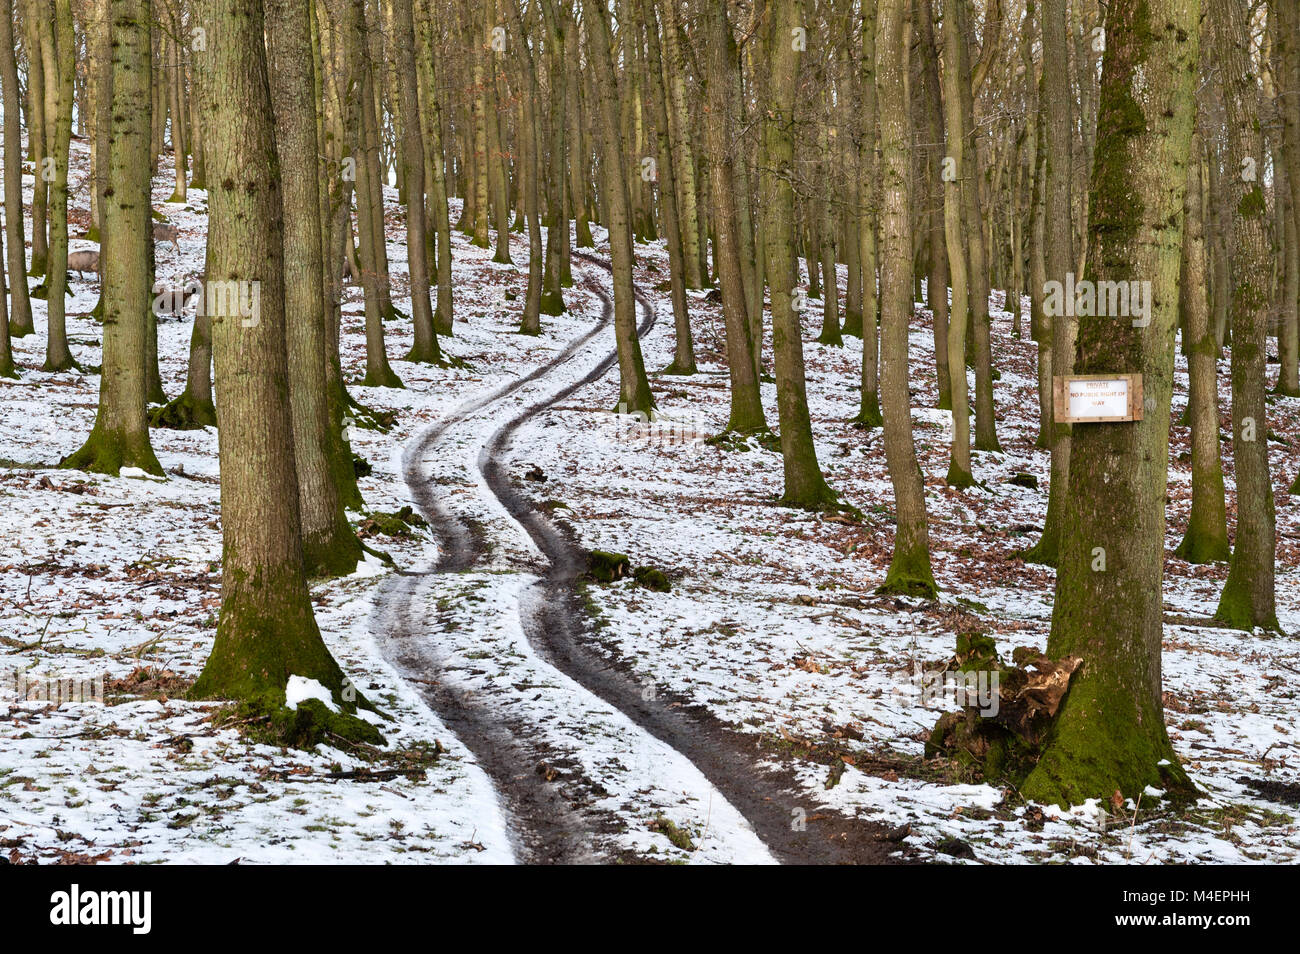 Wales, UK. A track winding through a forest in winter with a sign reading 'private - no public right of way' - Stock Image